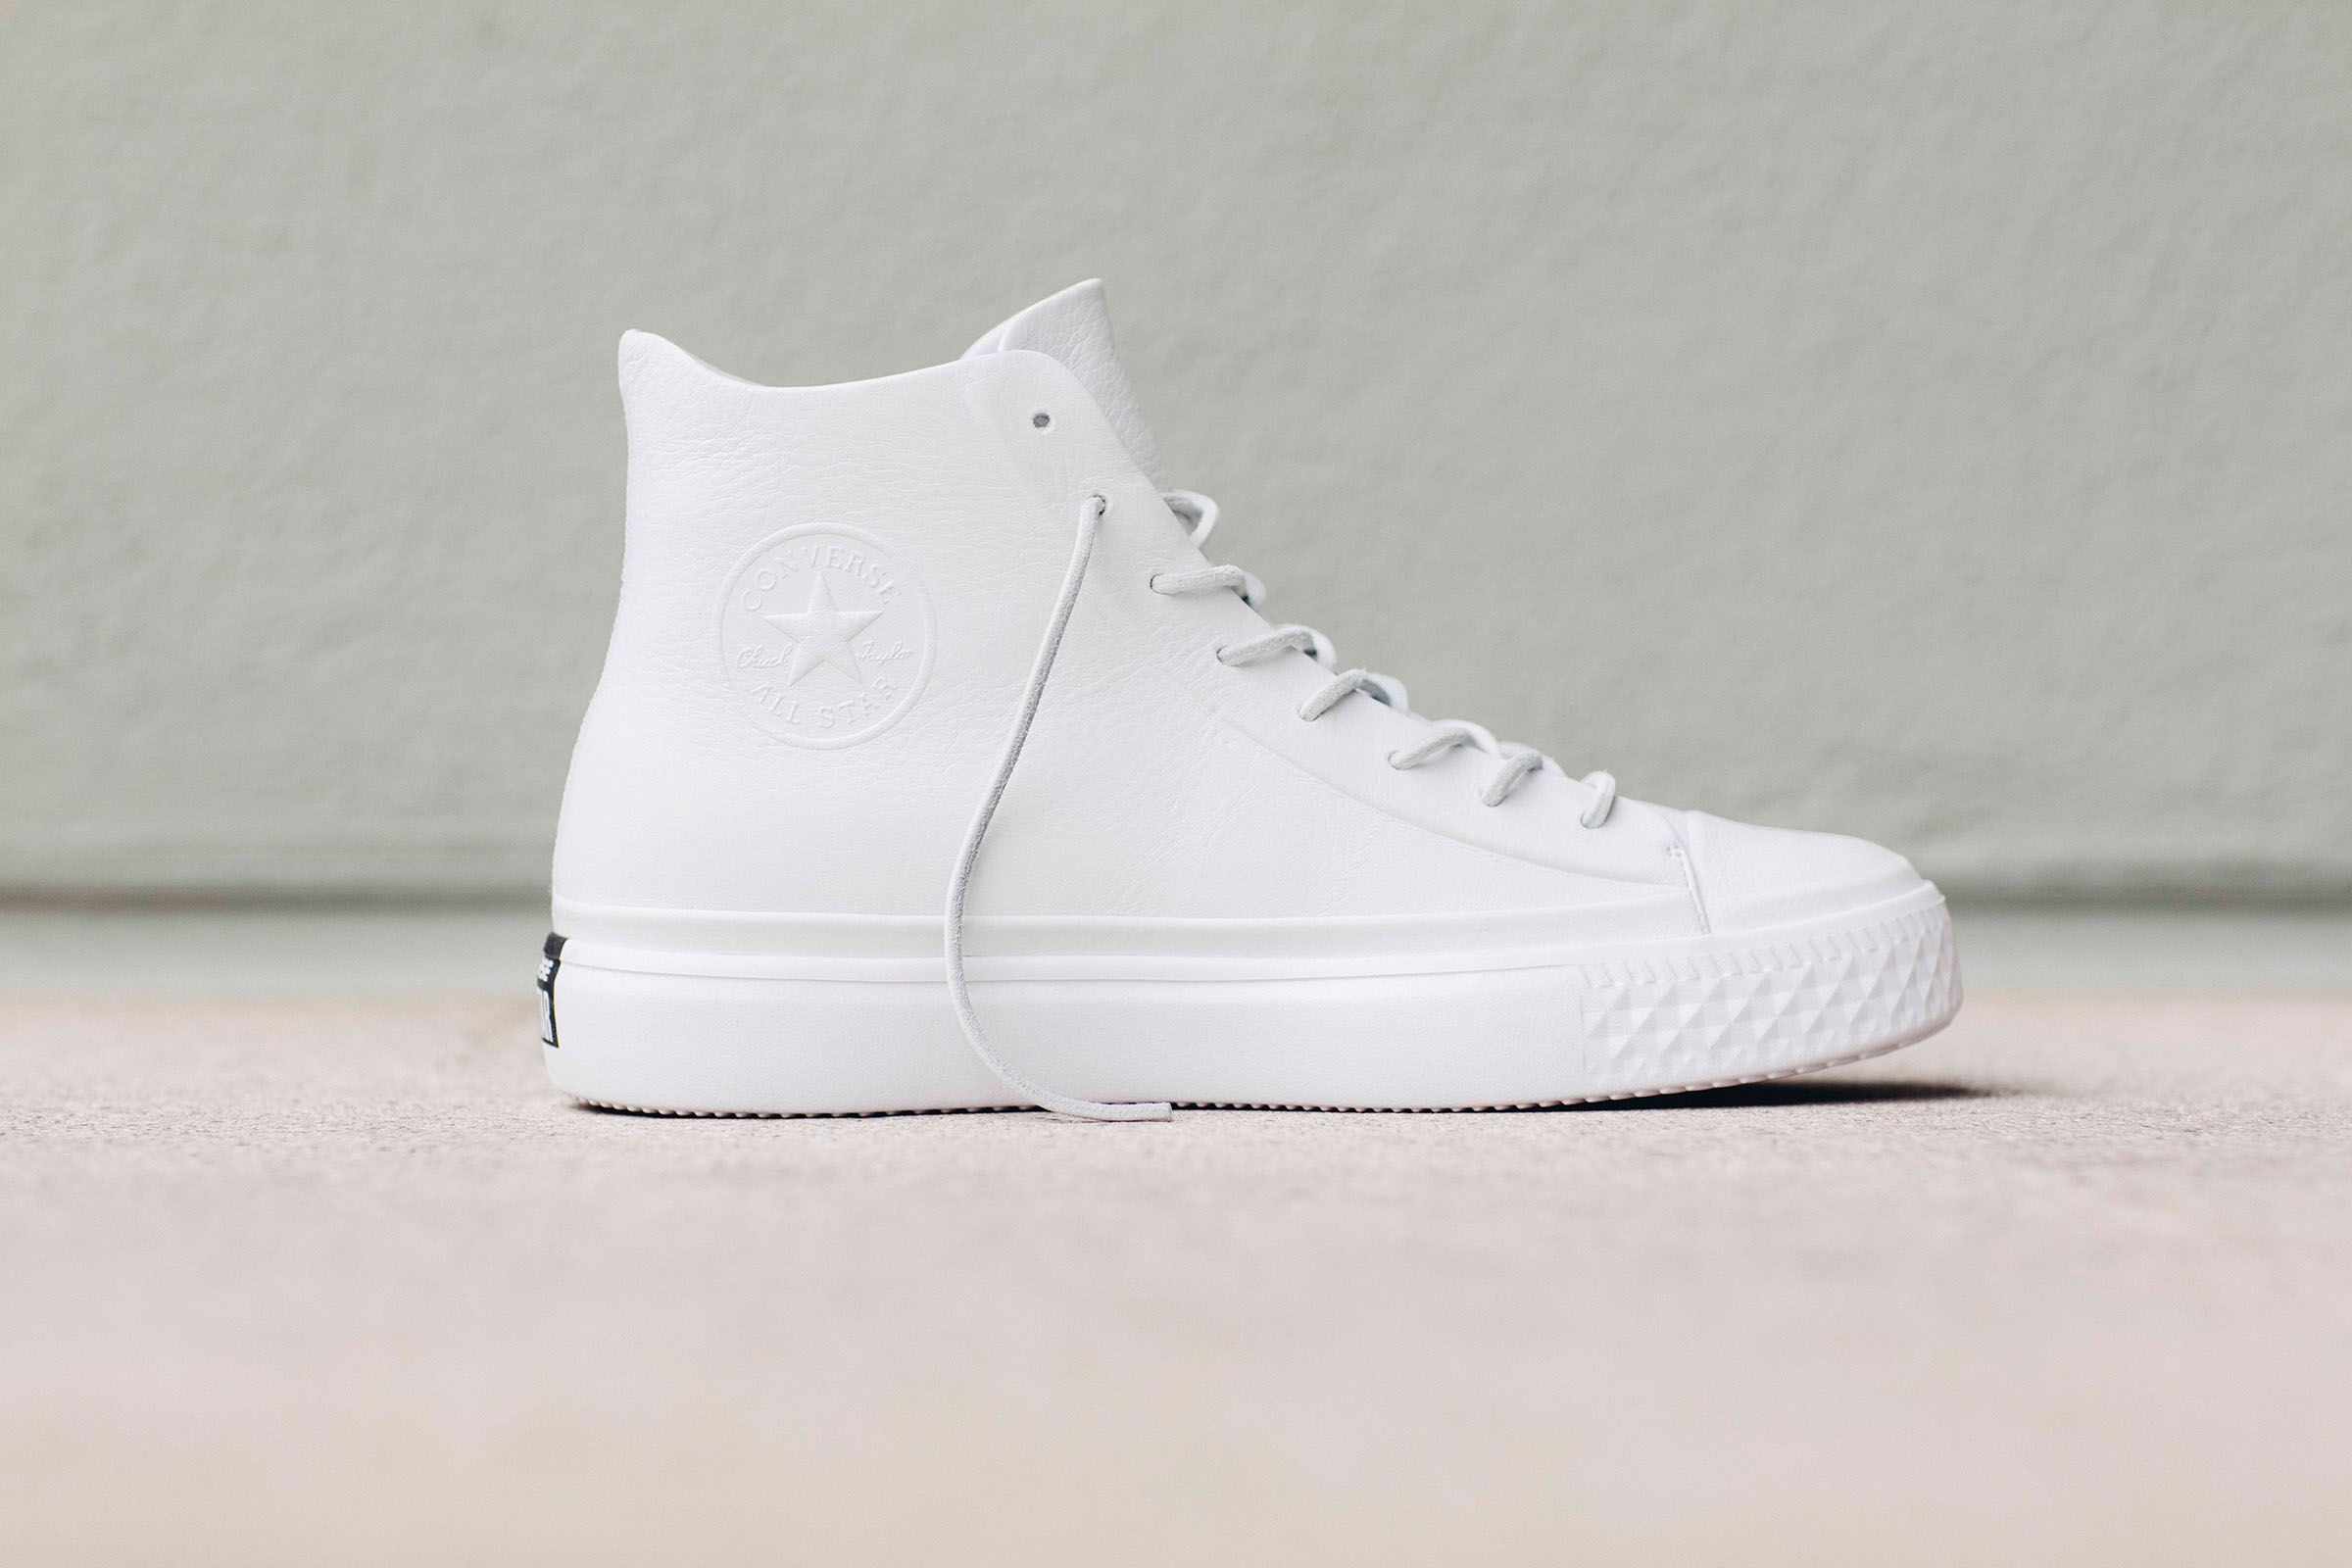 Converse Modern Lux | The Evolution For Chucks